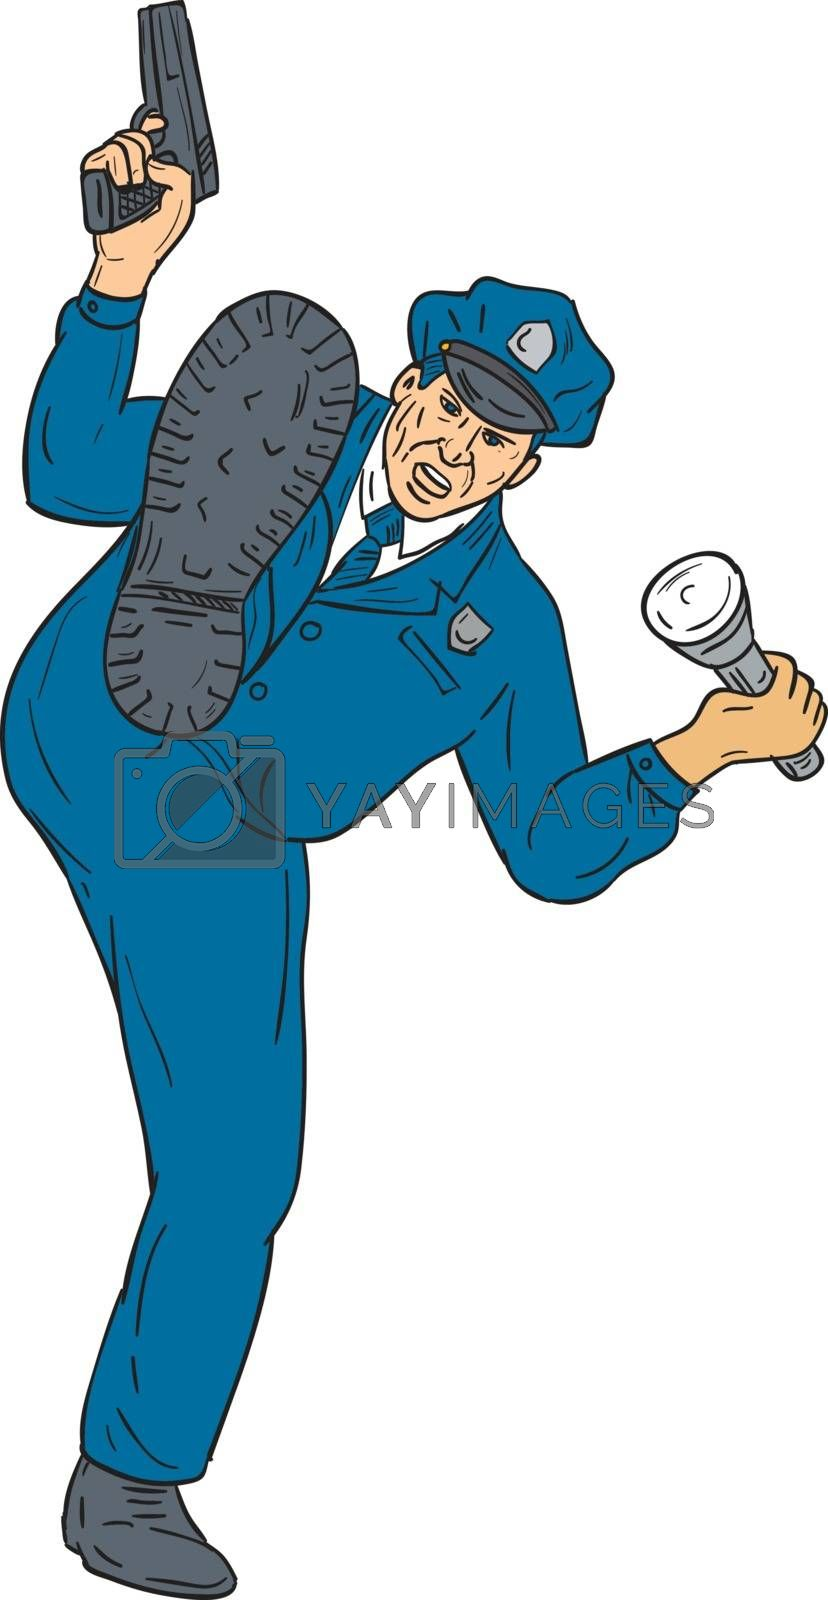 Drawing sketch style illustration of a policeman police officer holding gun in one hand and torch flashlight on the other hand kicking facing front  set on isolated white background.